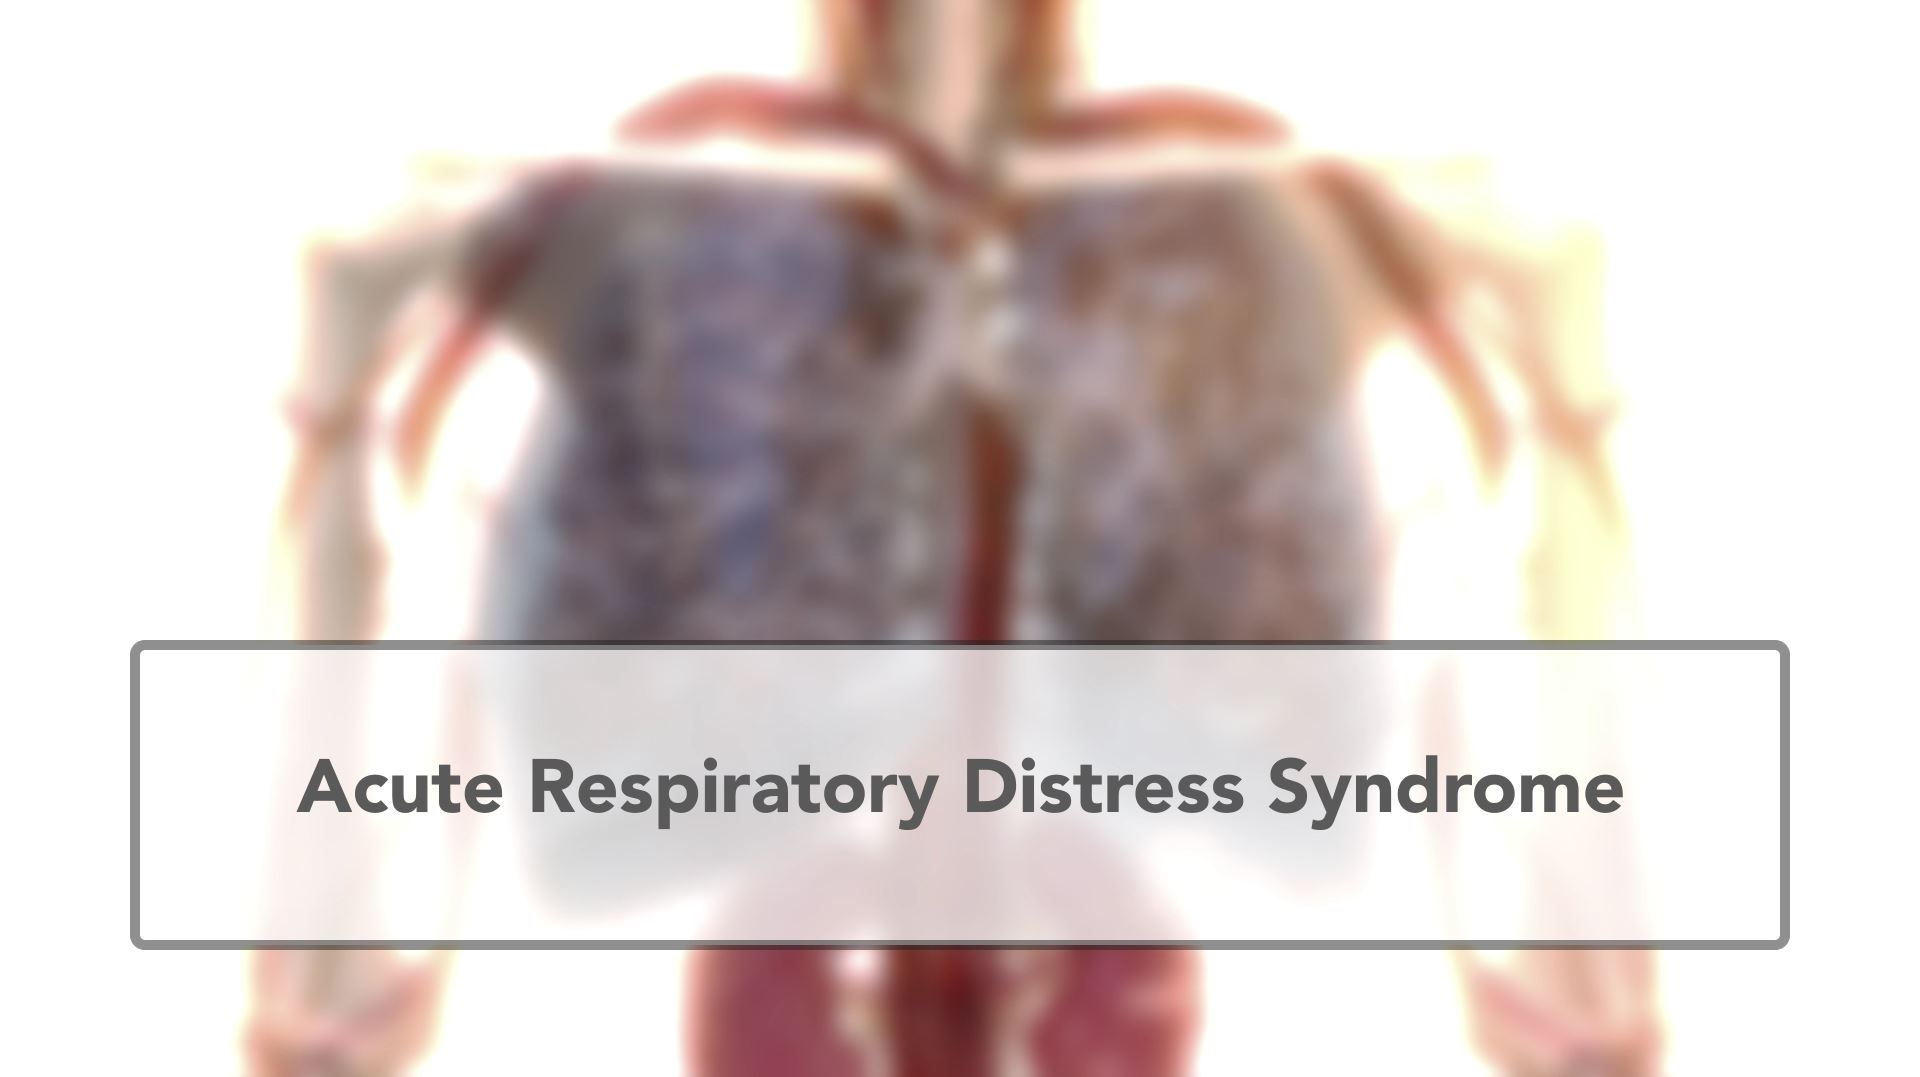 ARDS acute respiratory distress syndrome | Faron